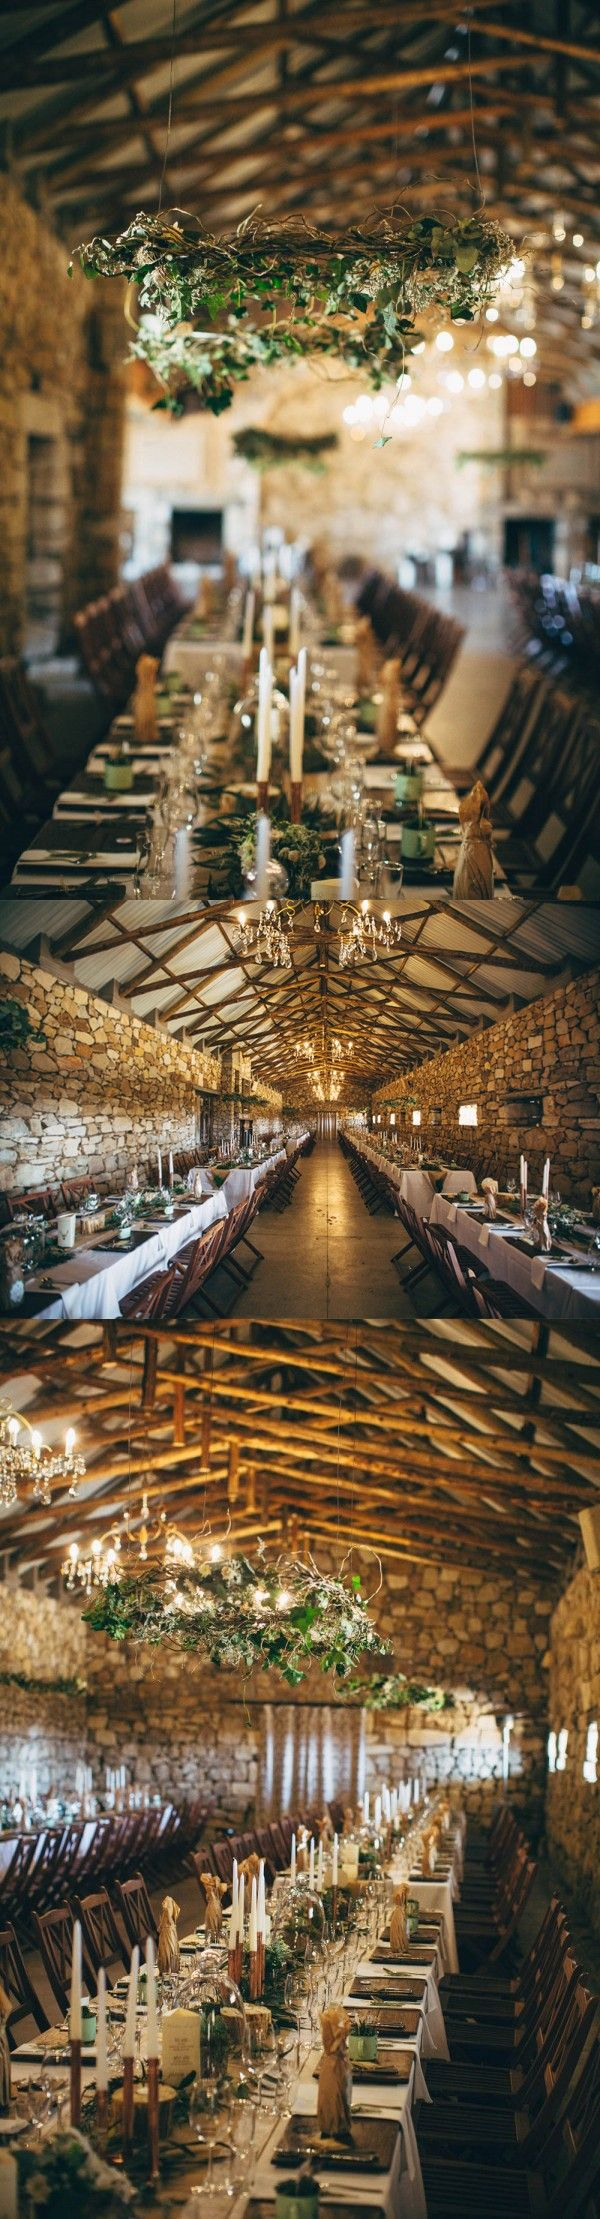 farm wedding venues minneapolis%0A    of The Most Beautiful Barn Venues For Getting Hitched